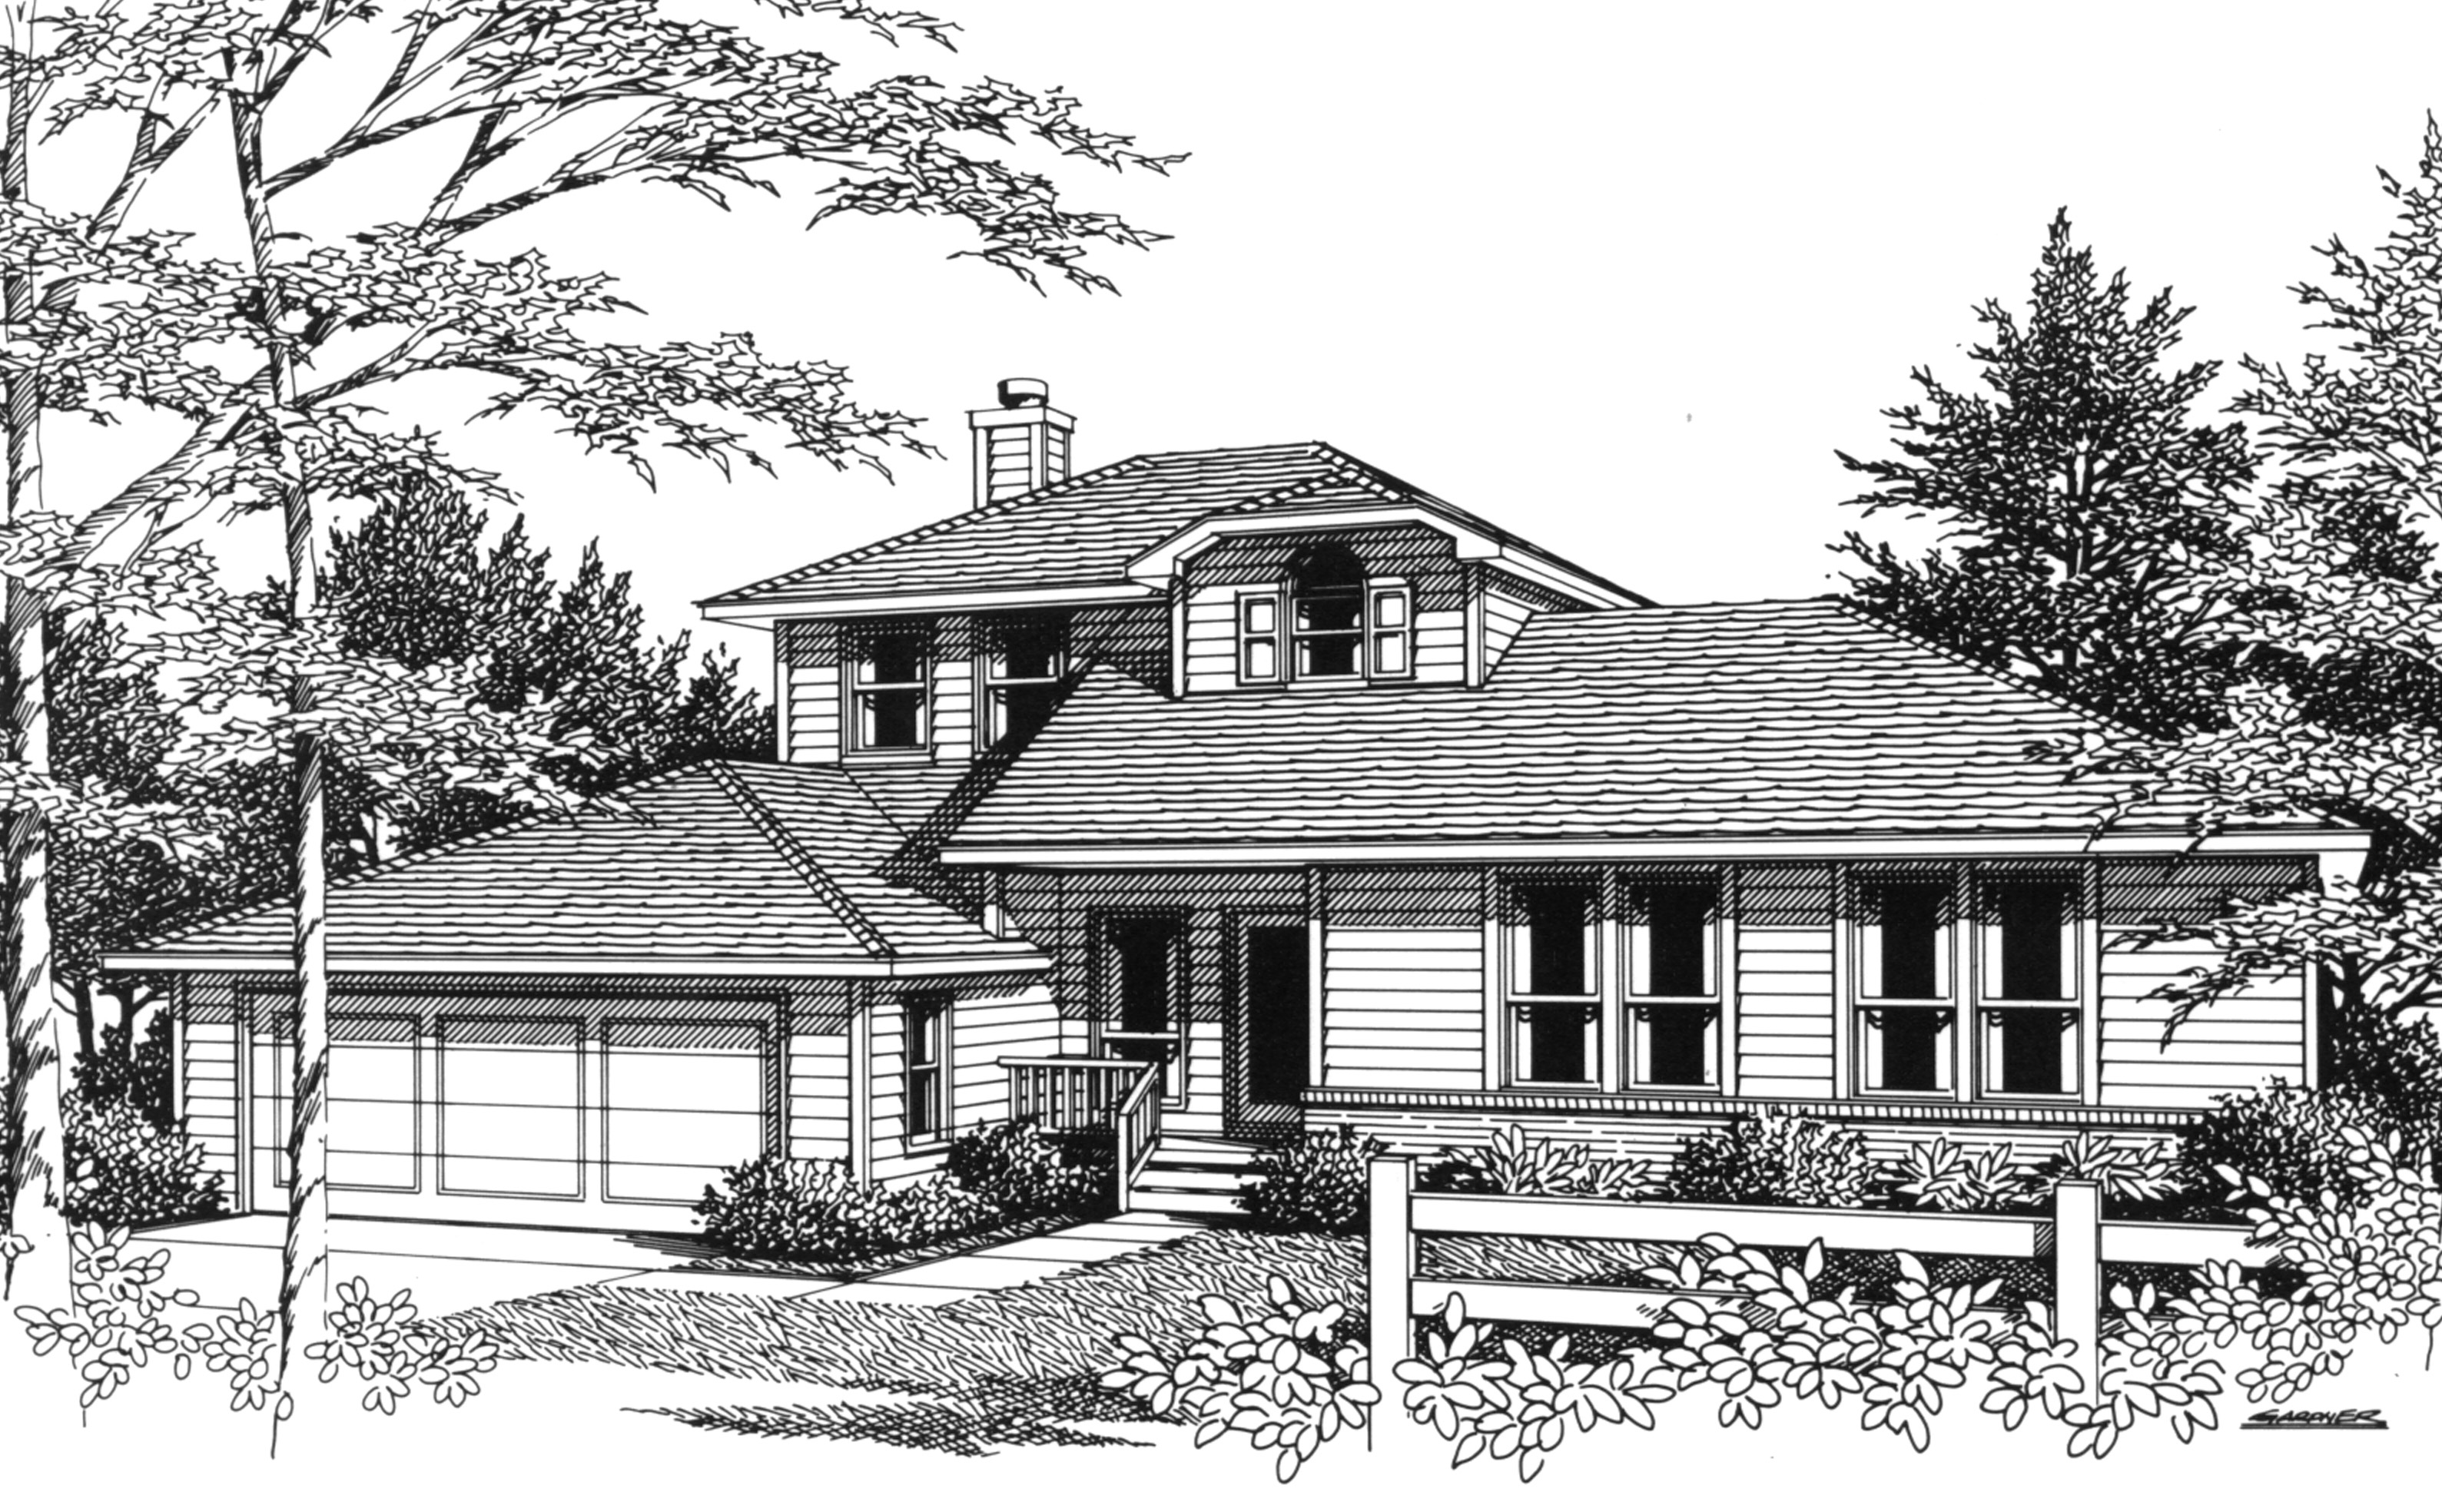 Master suite upstairs 3411vl architectural designs for House plans master upstairs